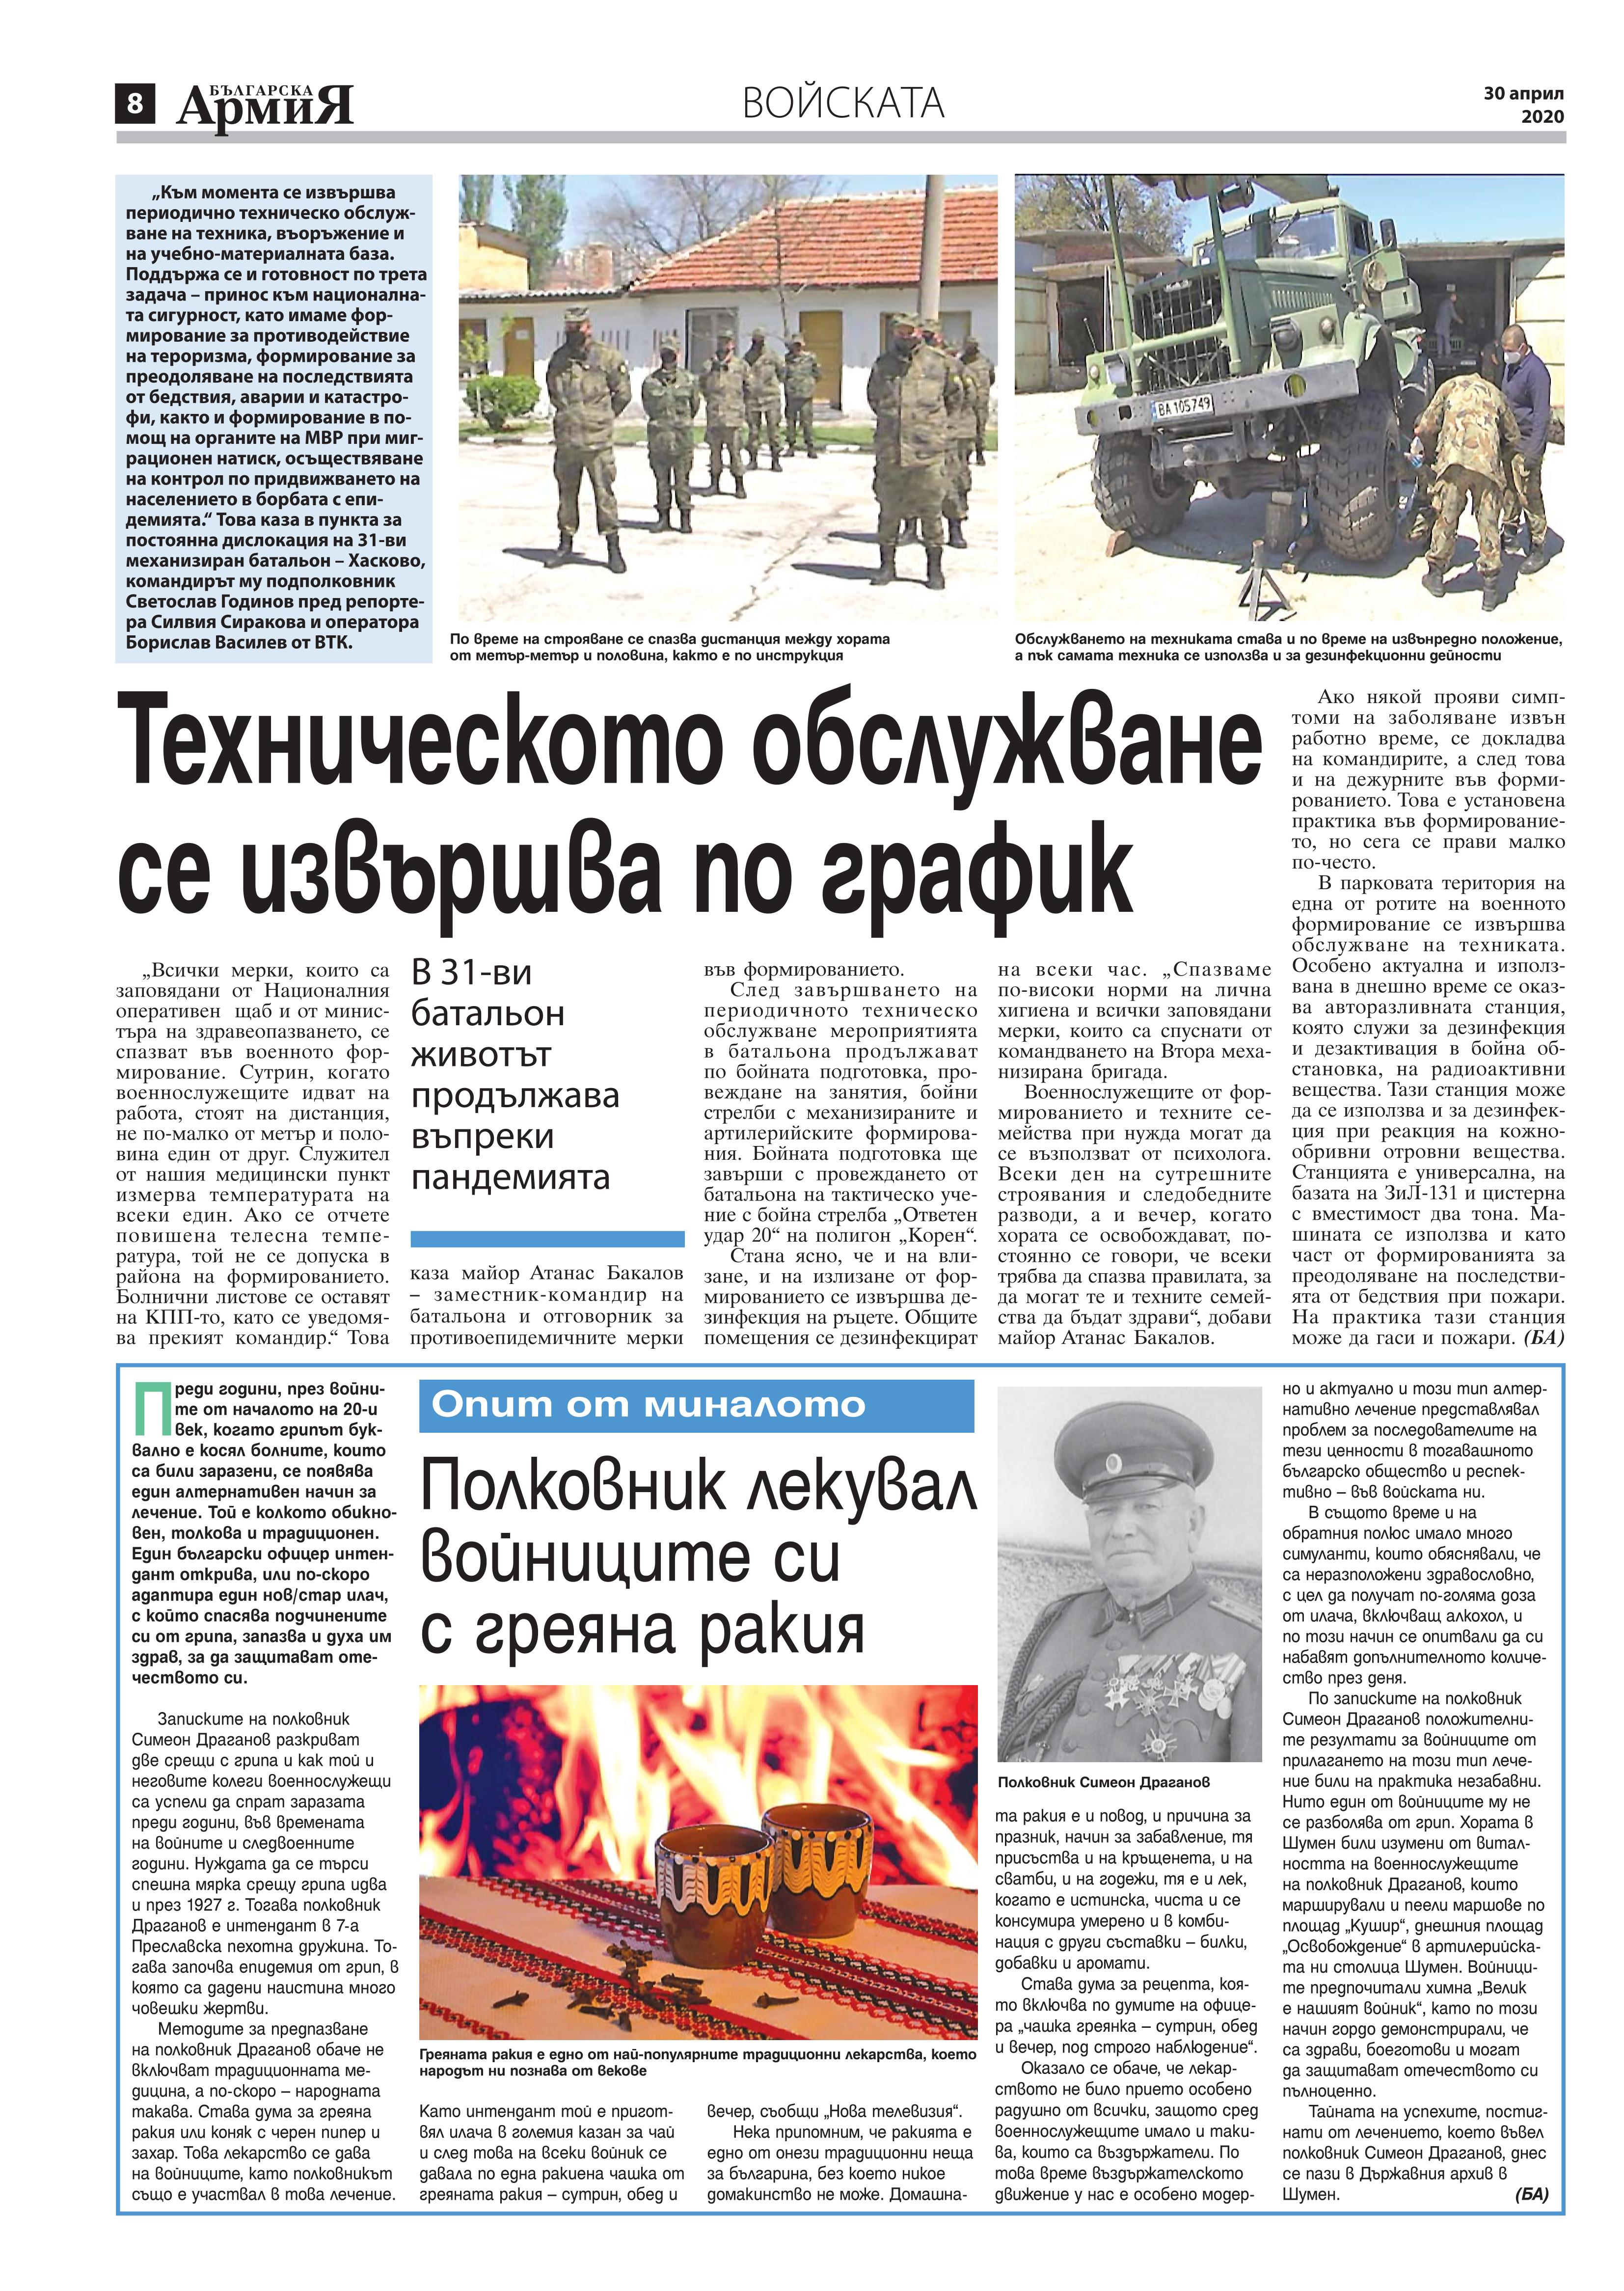 https://armymedia.bg/wp-content/uploads/2015/06/08.page1_-134.jpg